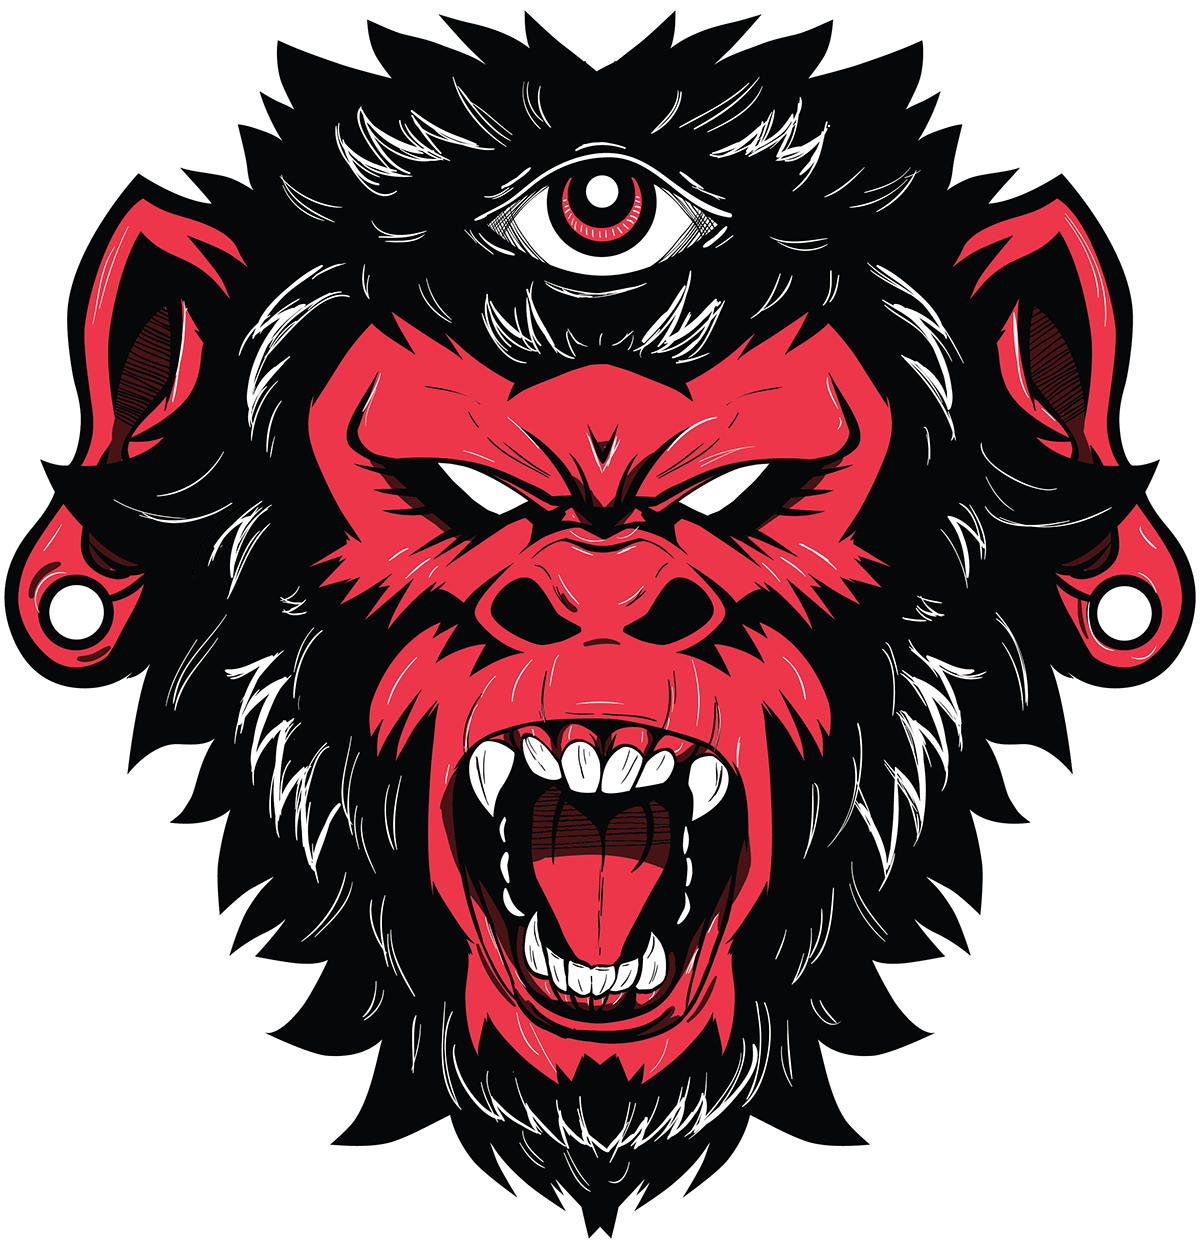 Demon Monkey vector illustration